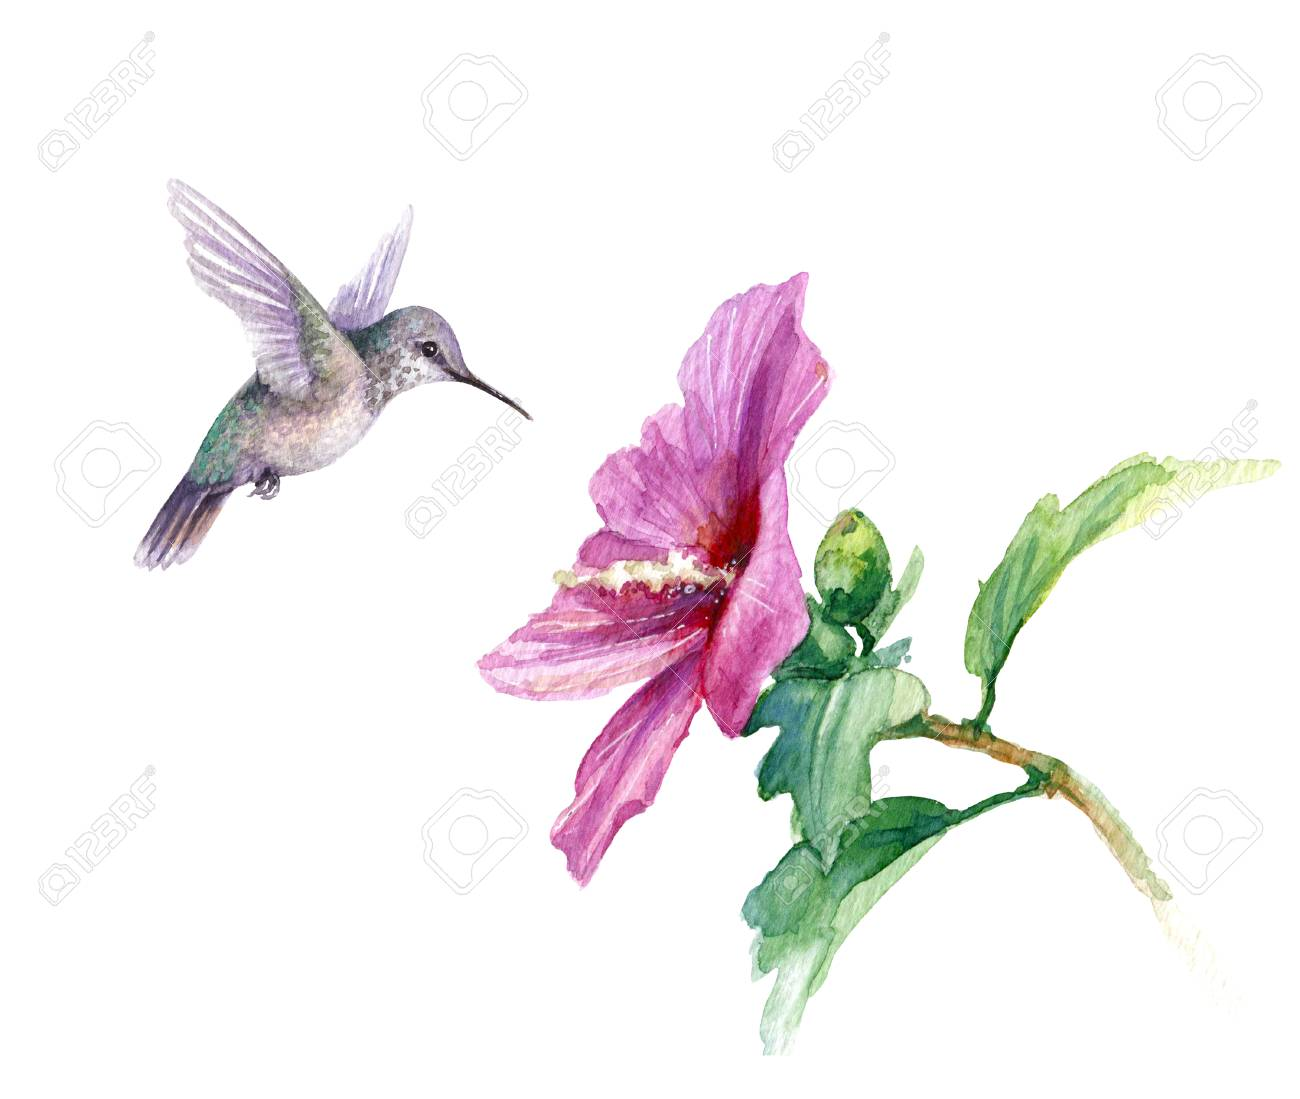 Watercolor Painting. Hand Drawn Humming Bird And Pink Flower.. Stock Photo,  Picture And Royalty Free Image. Image 115664798.